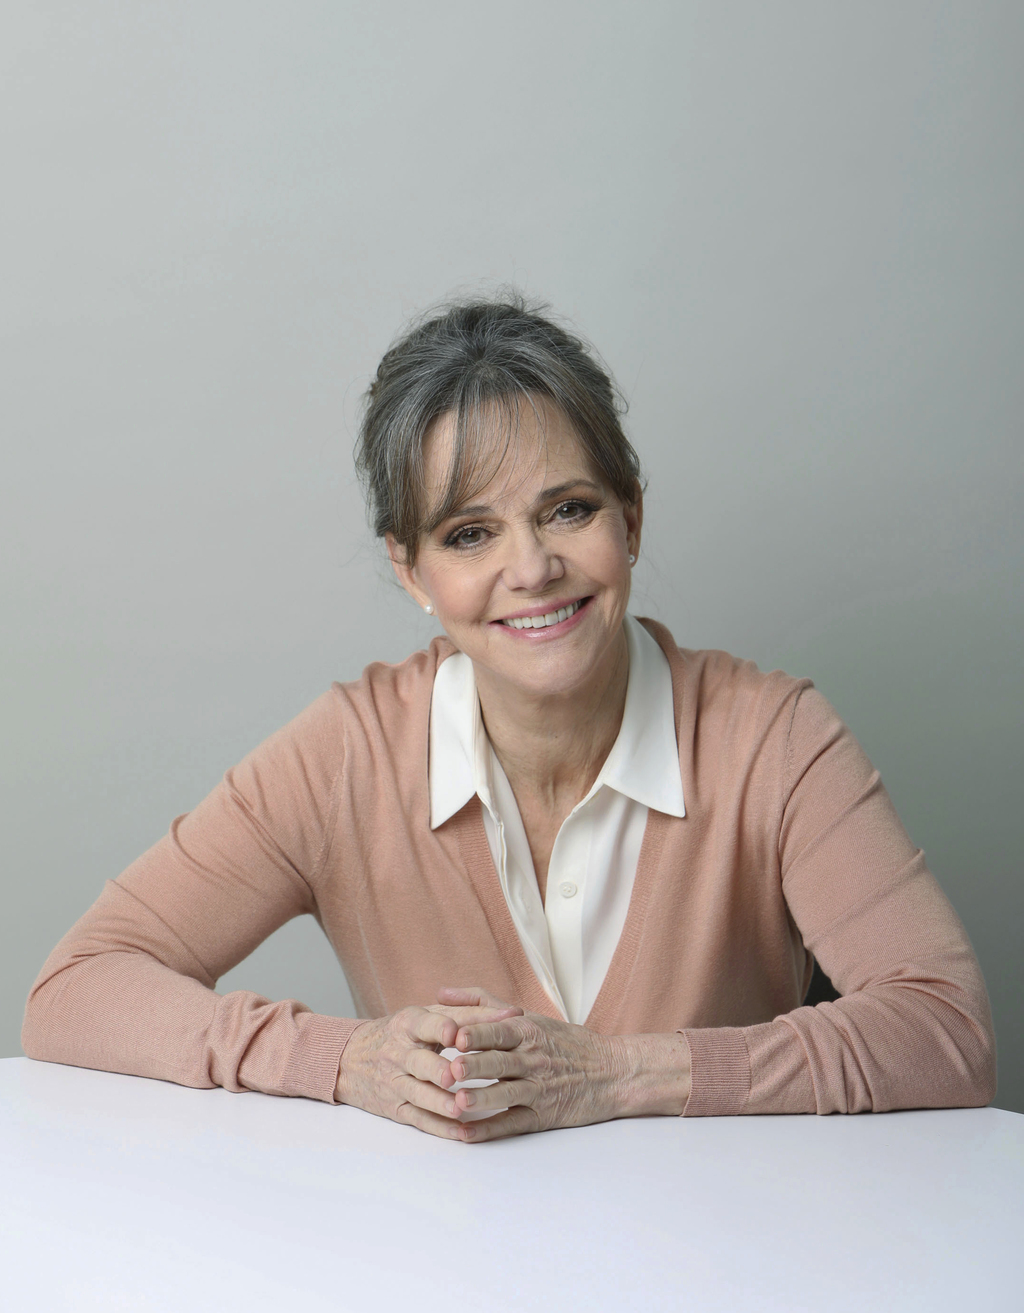 In this March 3, 2017 photo, actress Sally Field poses for a portrait in New York. The Emmy- and Oscar-winner is playing Amanda Wingfie...